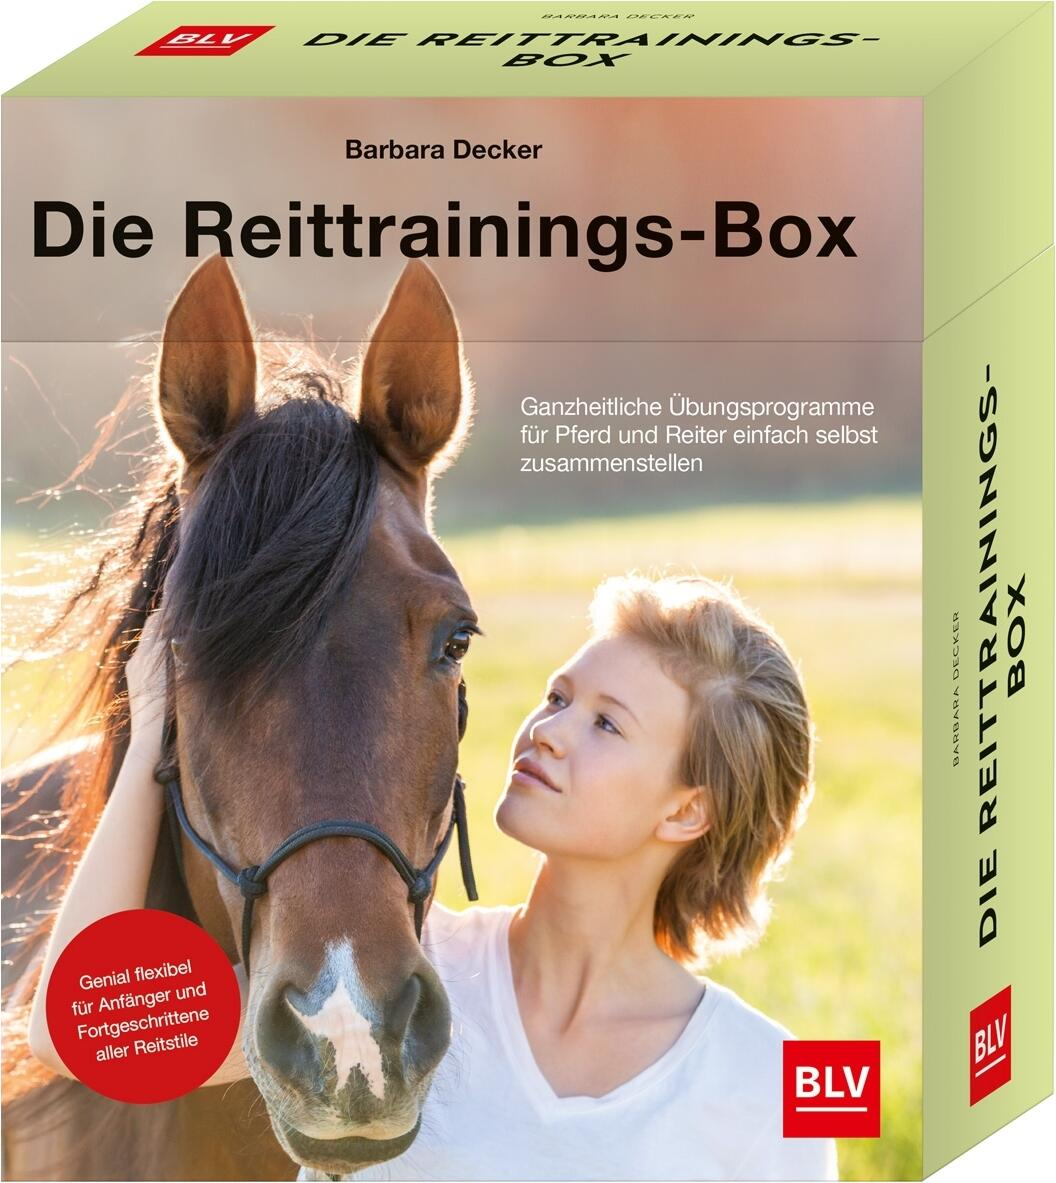 Die Reittrainings-Box